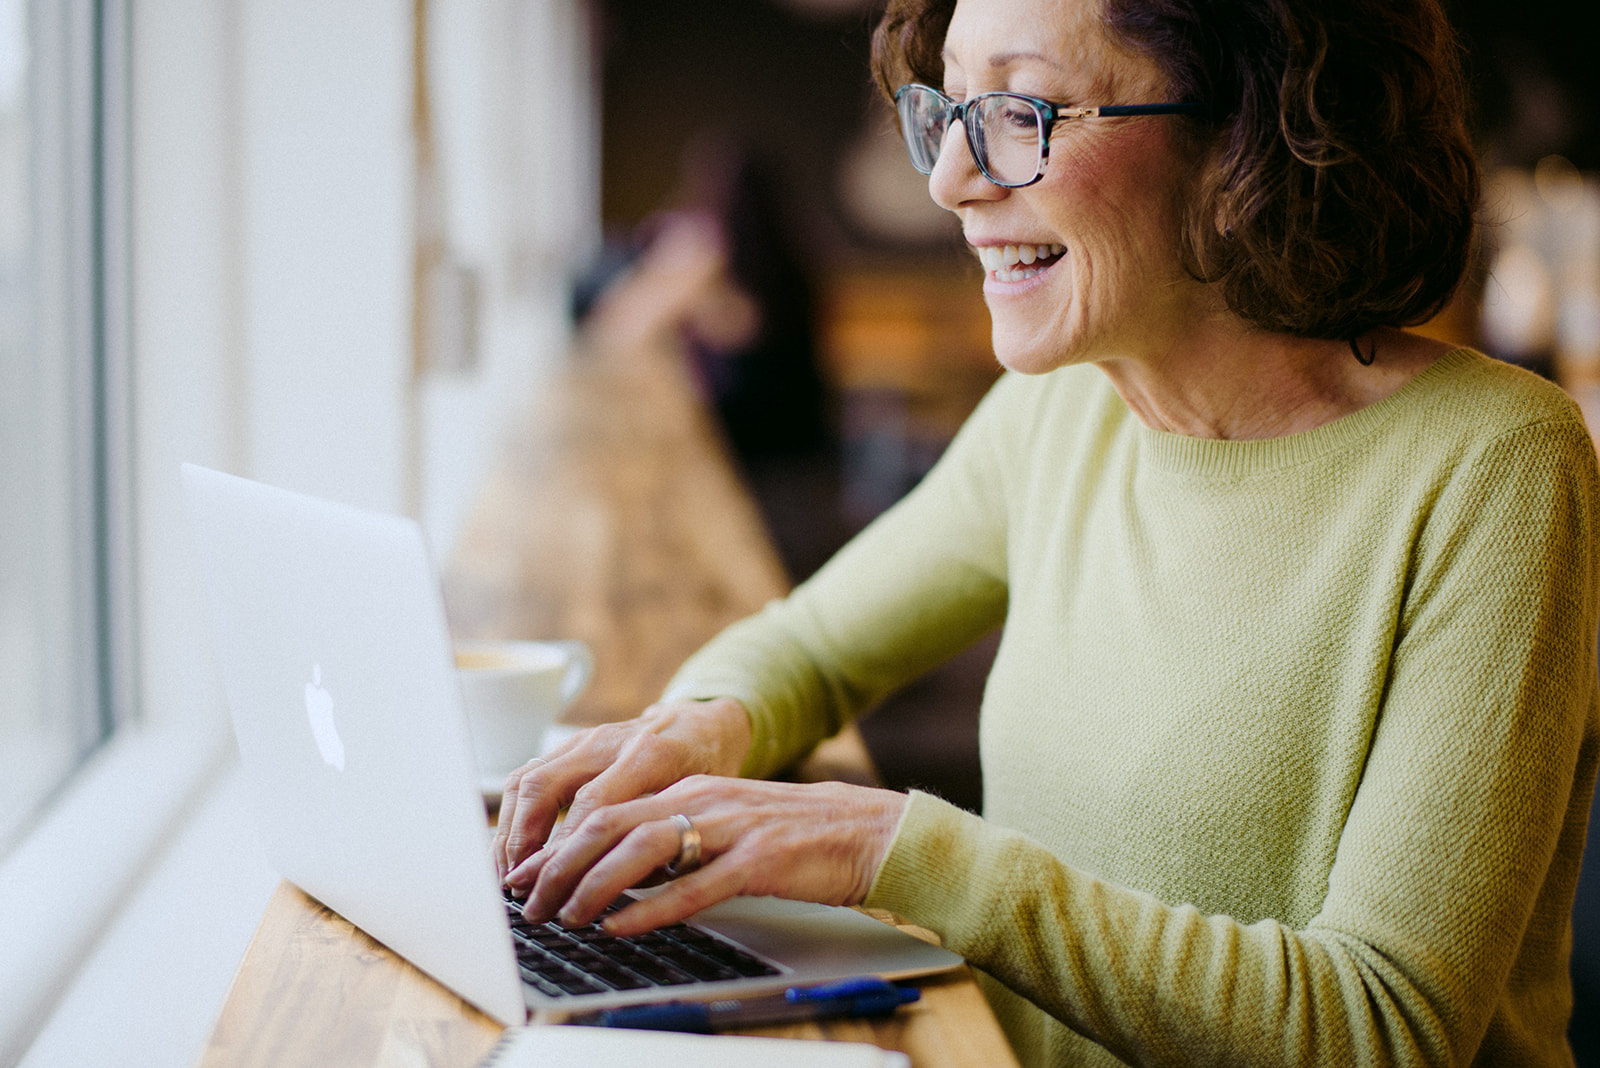 smiling woman looking at laptop in coffee shop